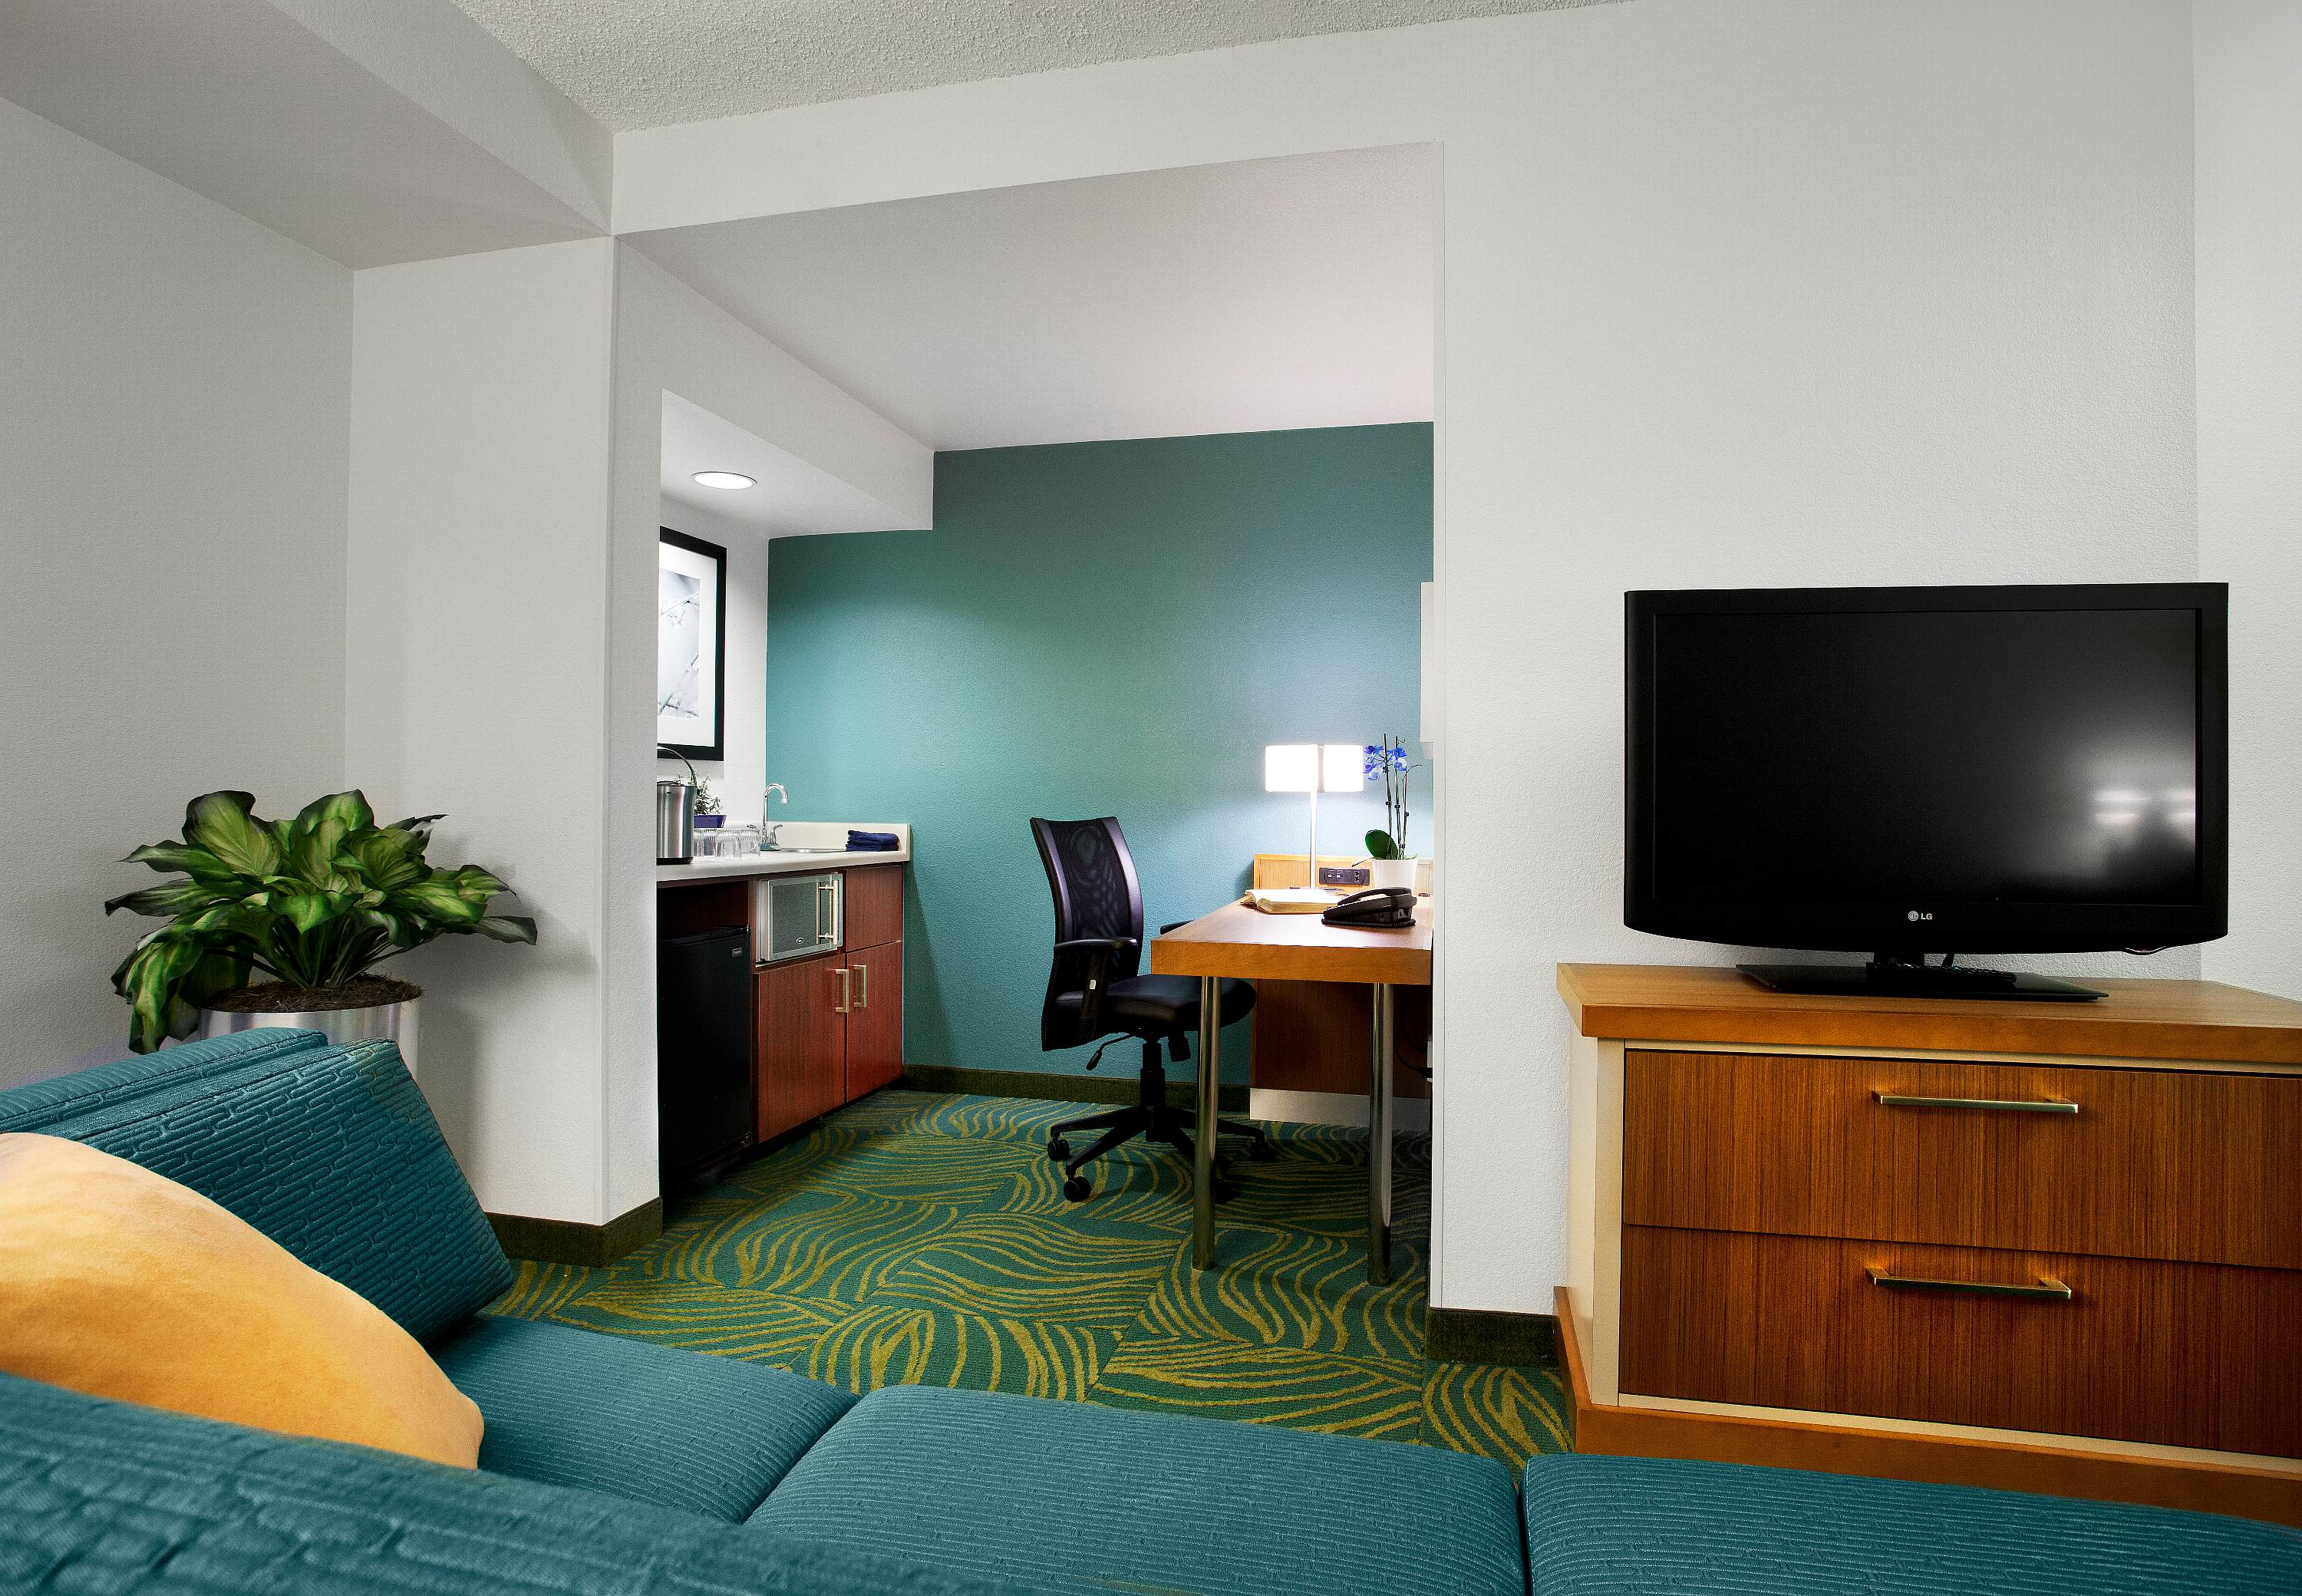 SpringHill Suites by Marriott Phoenix Downtown image 0